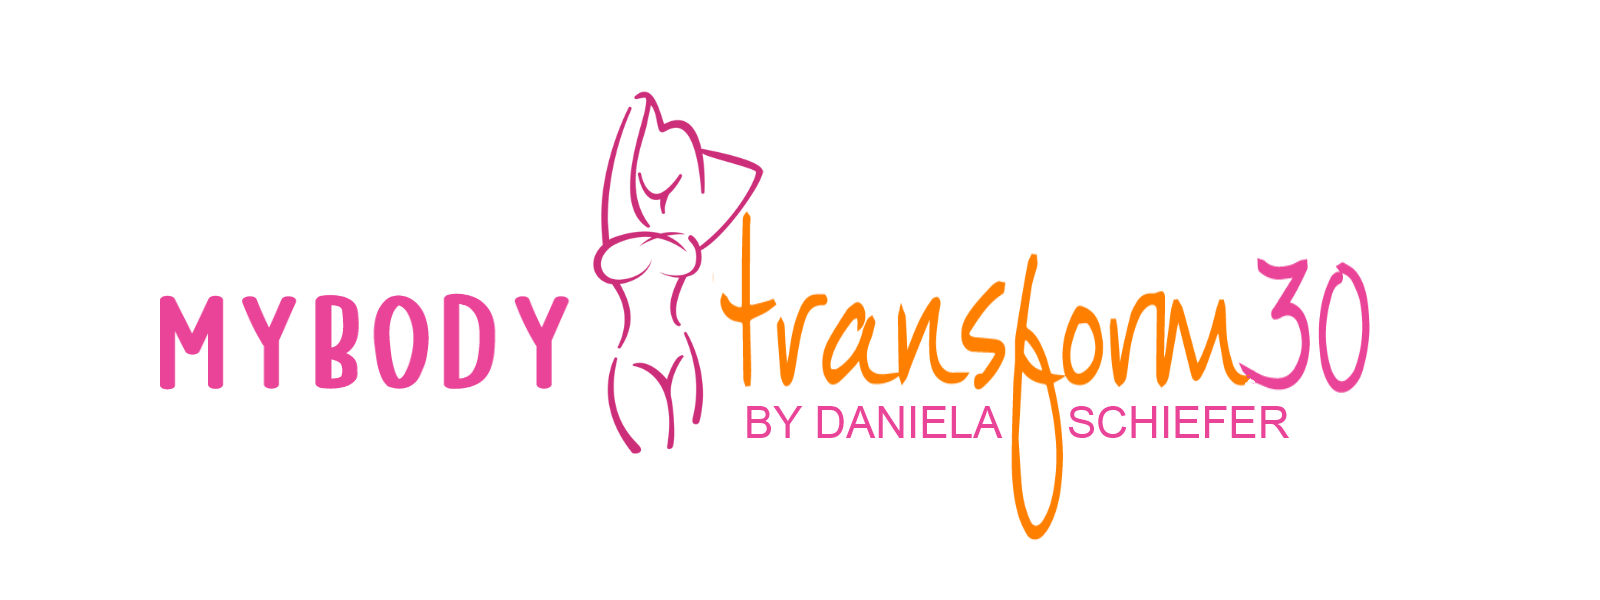 mybodytransform30 by daniela